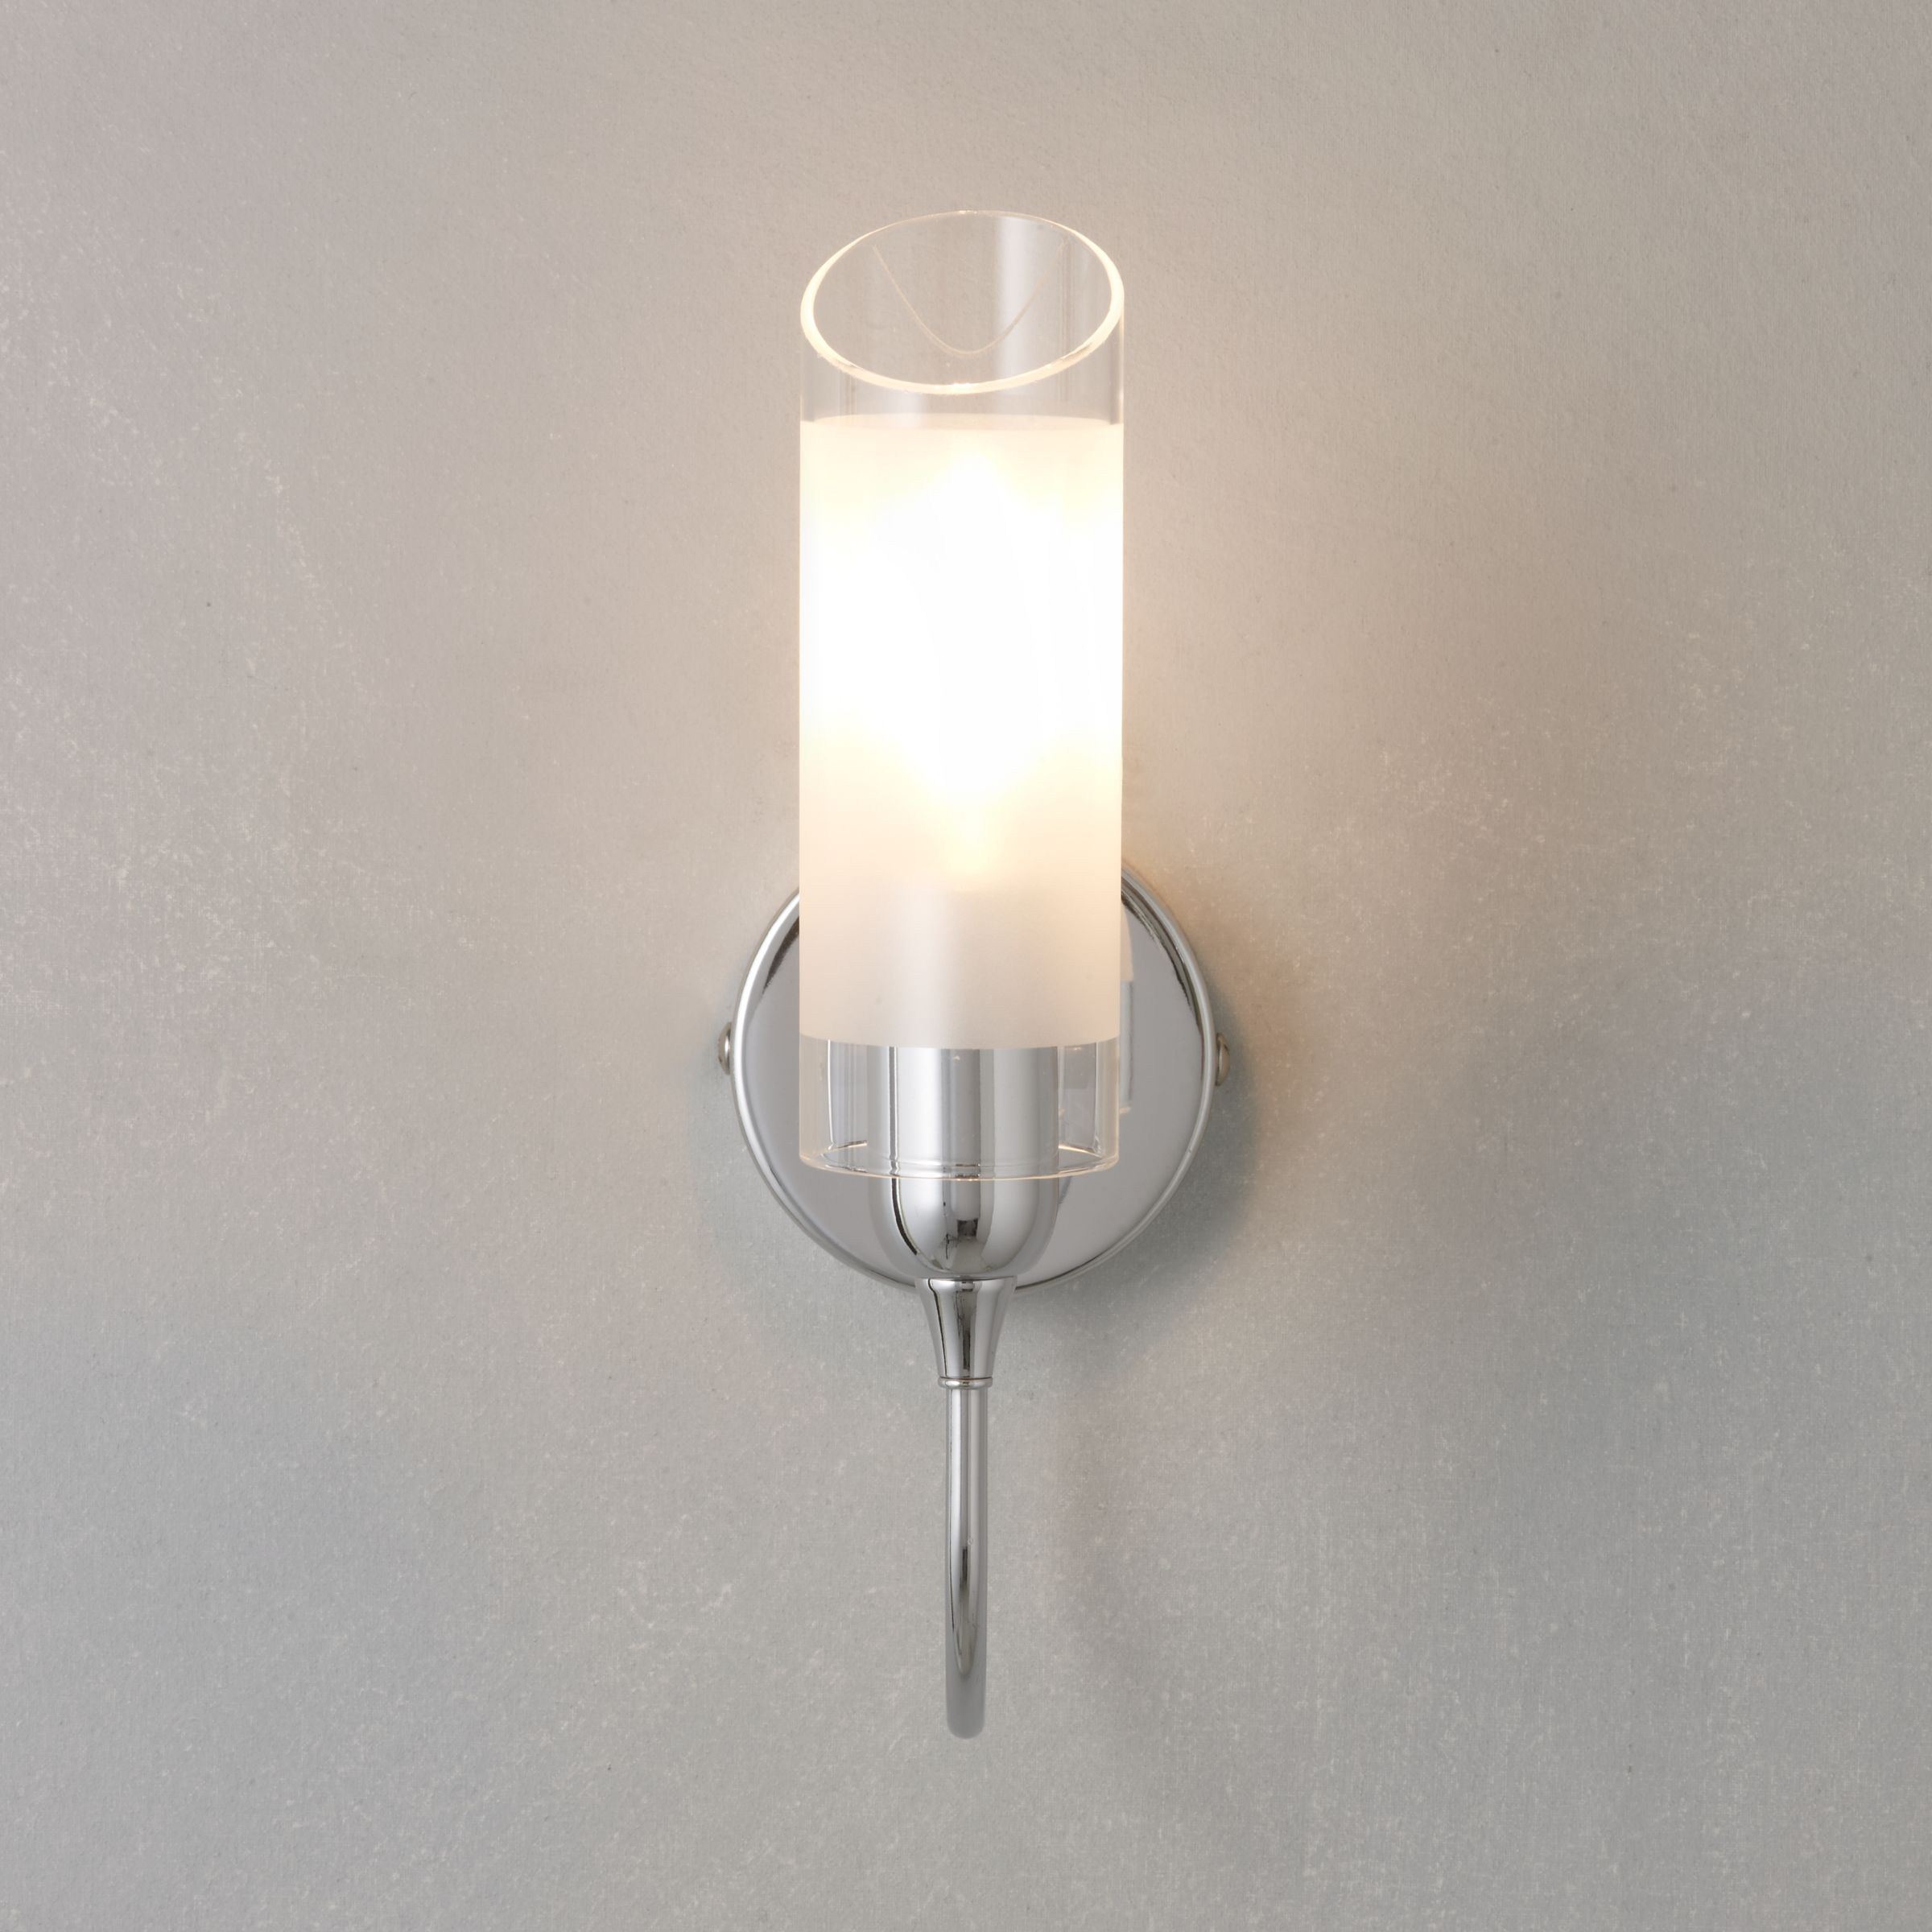 John Lewis Wall Lights Glass : Buy John Lewis Limbo Wall Light, Chrome John Lewis